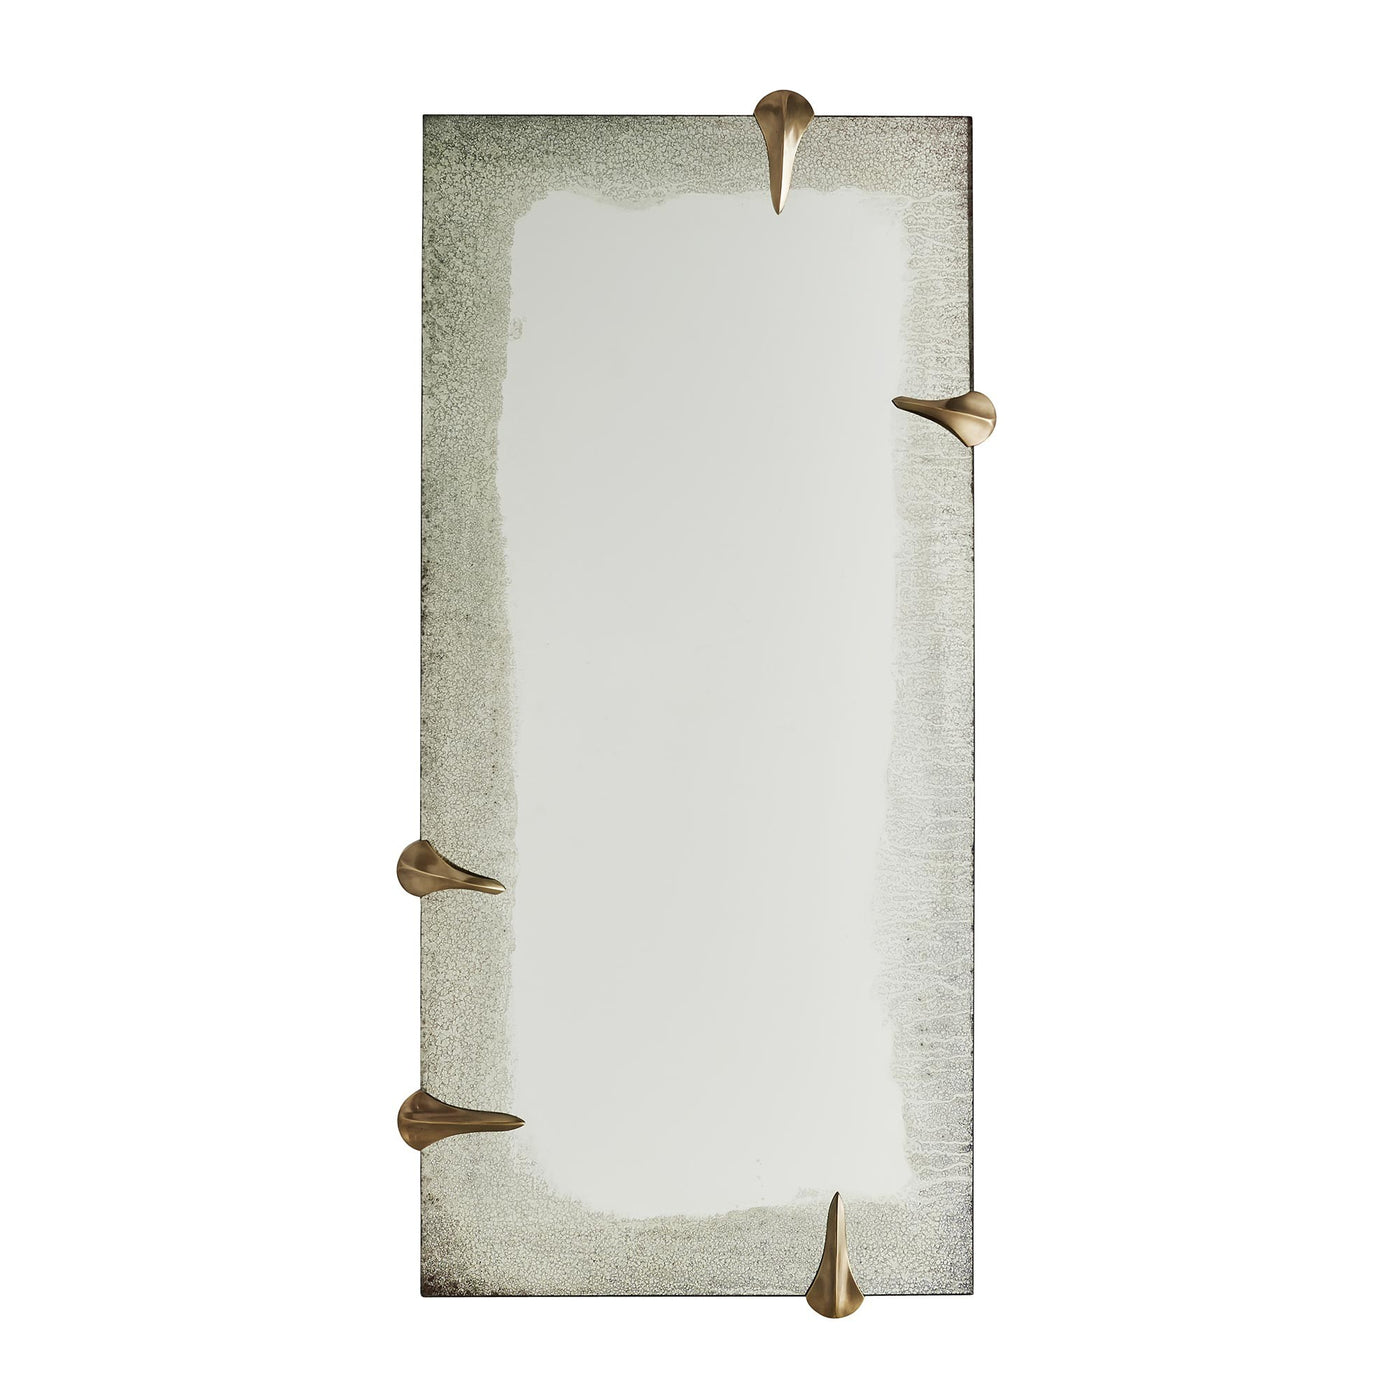 Arteriors Home Edged Talon Mirror Brass Floor Antiqued Clear